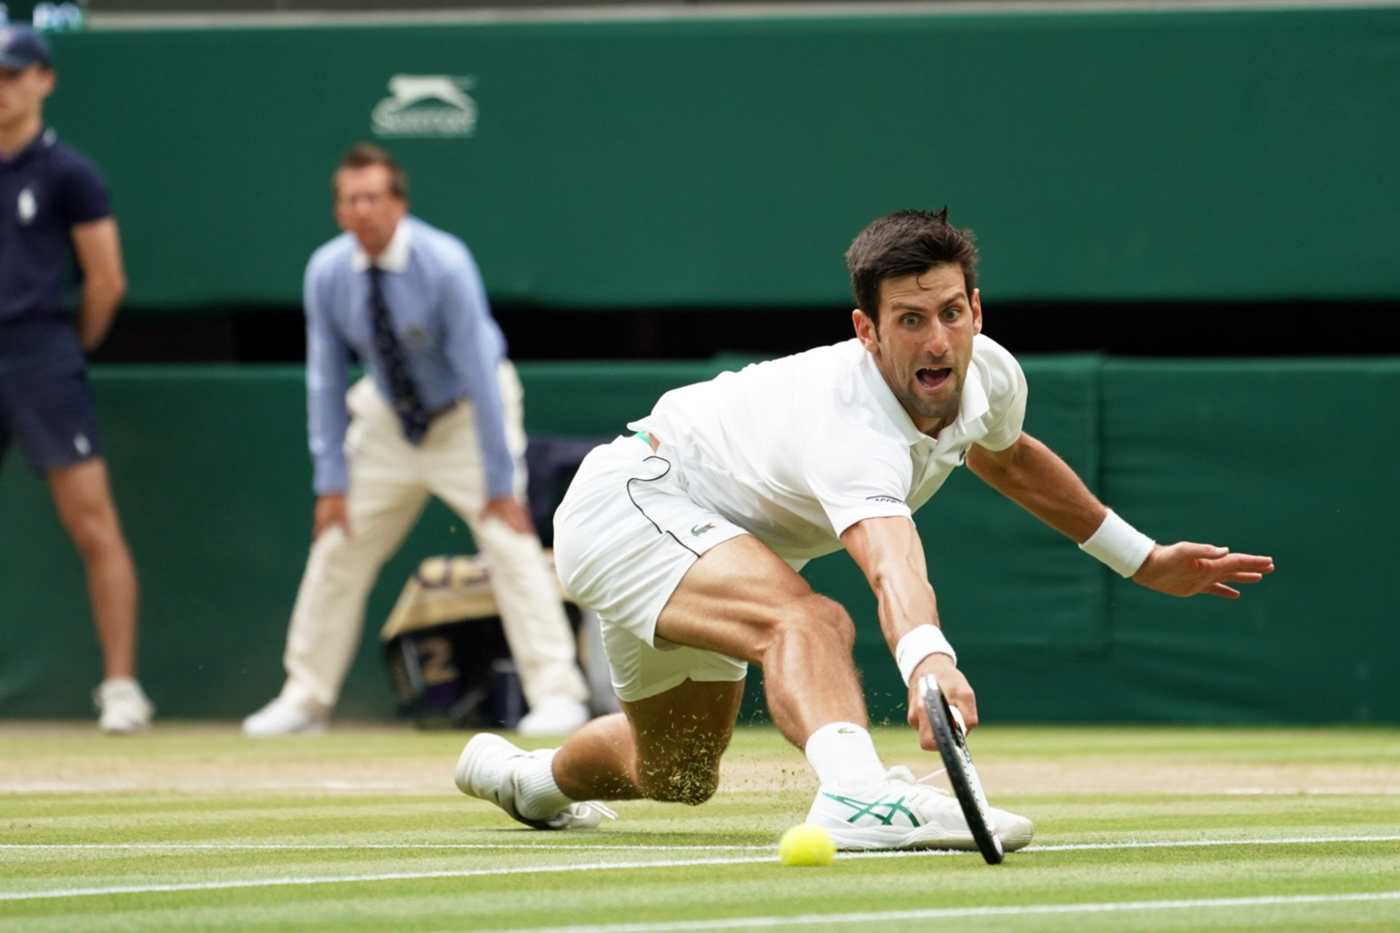 Novak Djokovic SRB v Rafael Nadal ESP in the semi final of the Gentlemen's Singles on Centre Court. The Championships 2018. Held at The All England Lawn Tennis Club, Wimbledon. Day 12 Saturday 14/07/2018. Credit: AELTC/Bob Martin